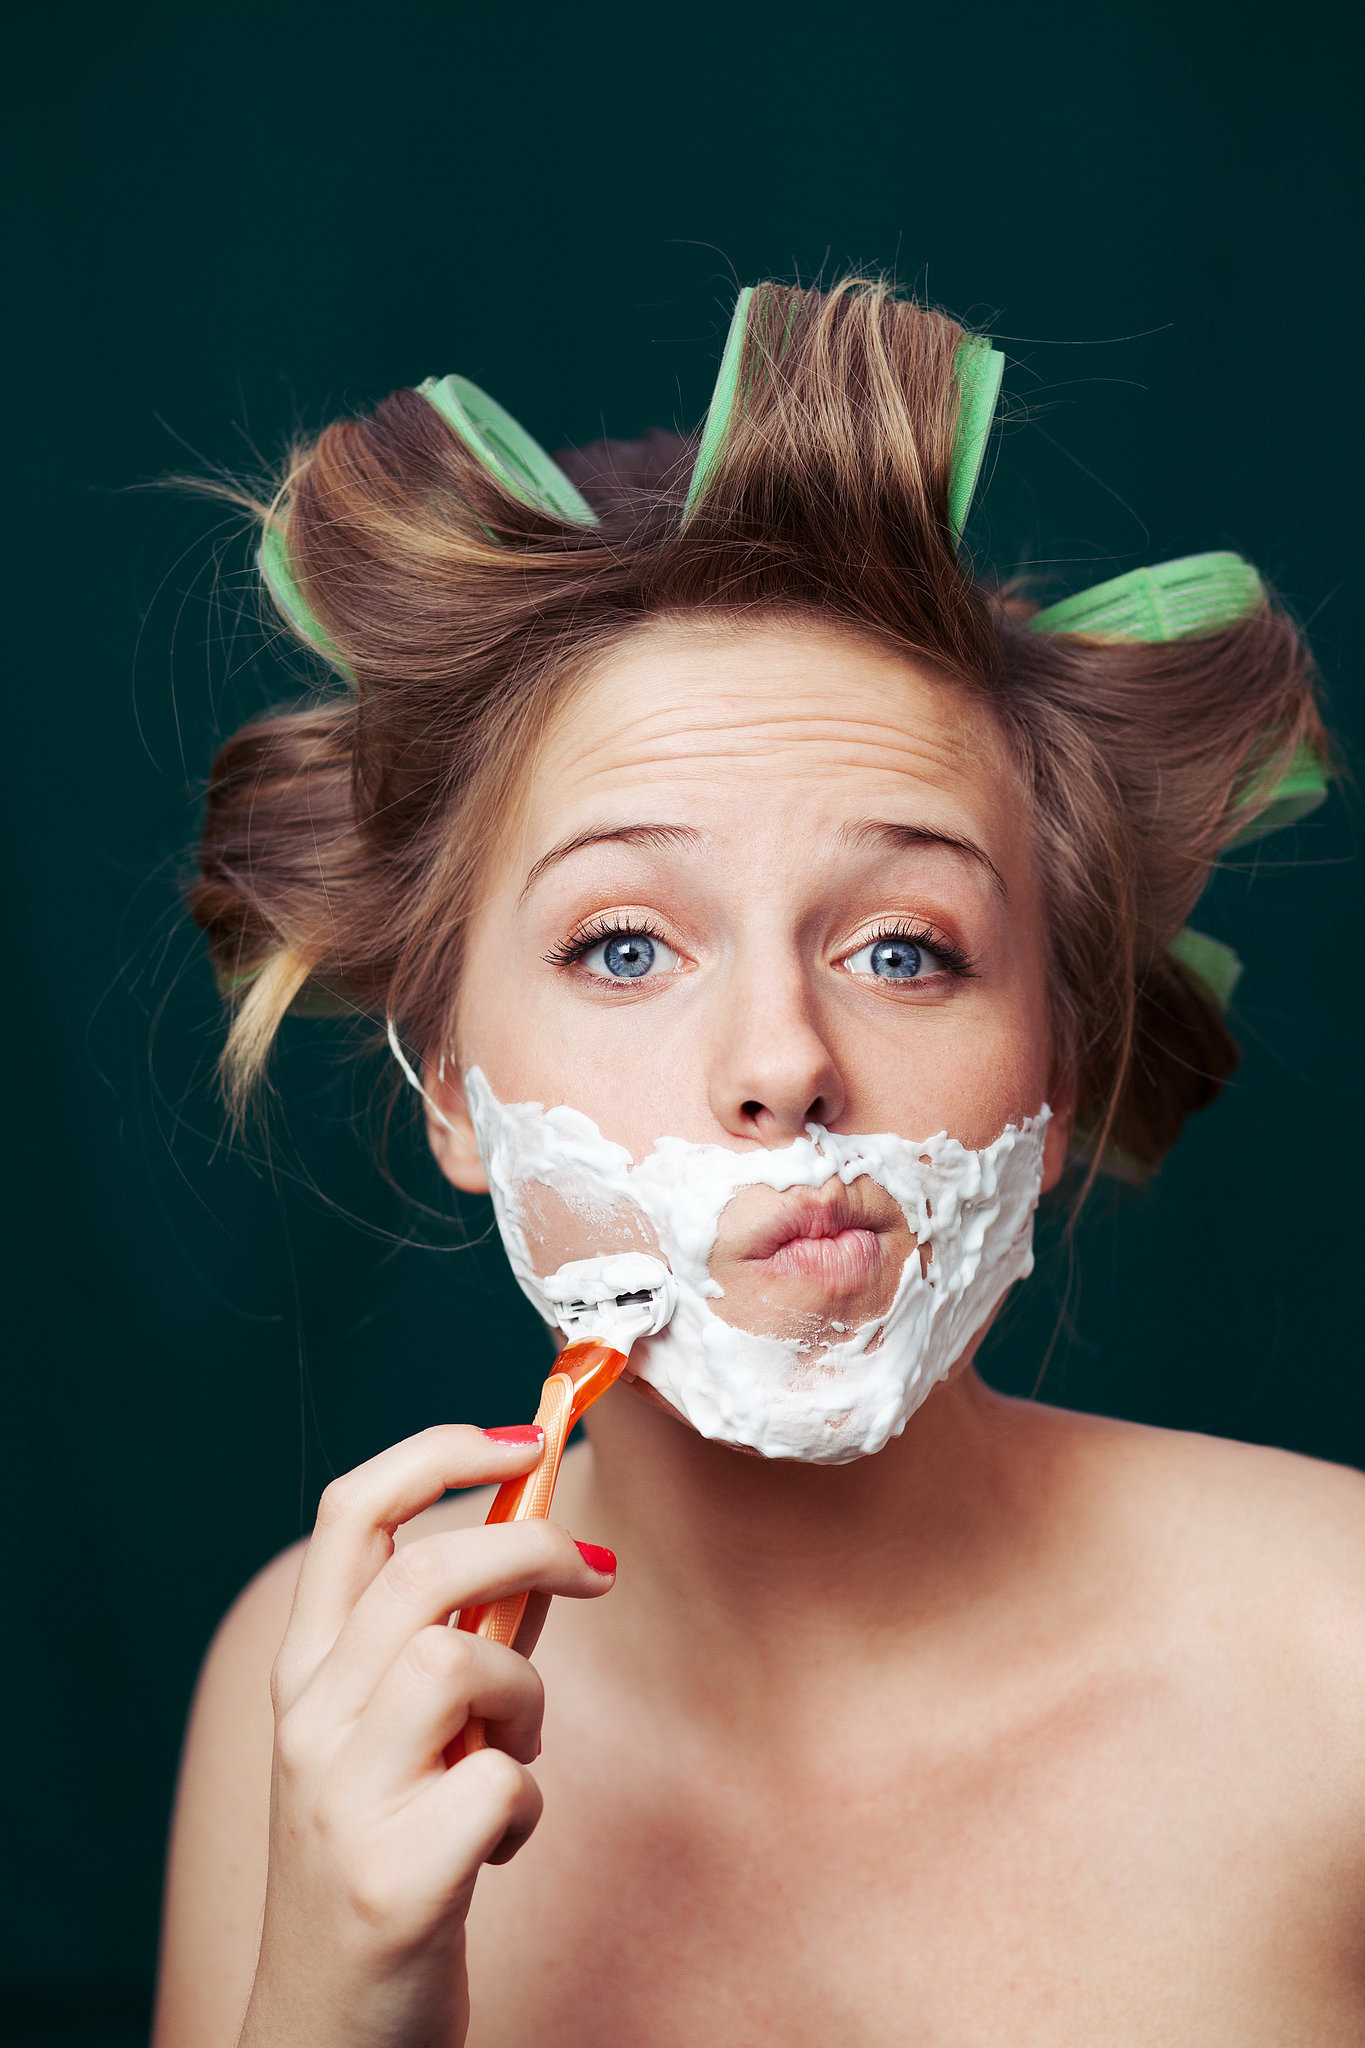 Facial shaving for woman